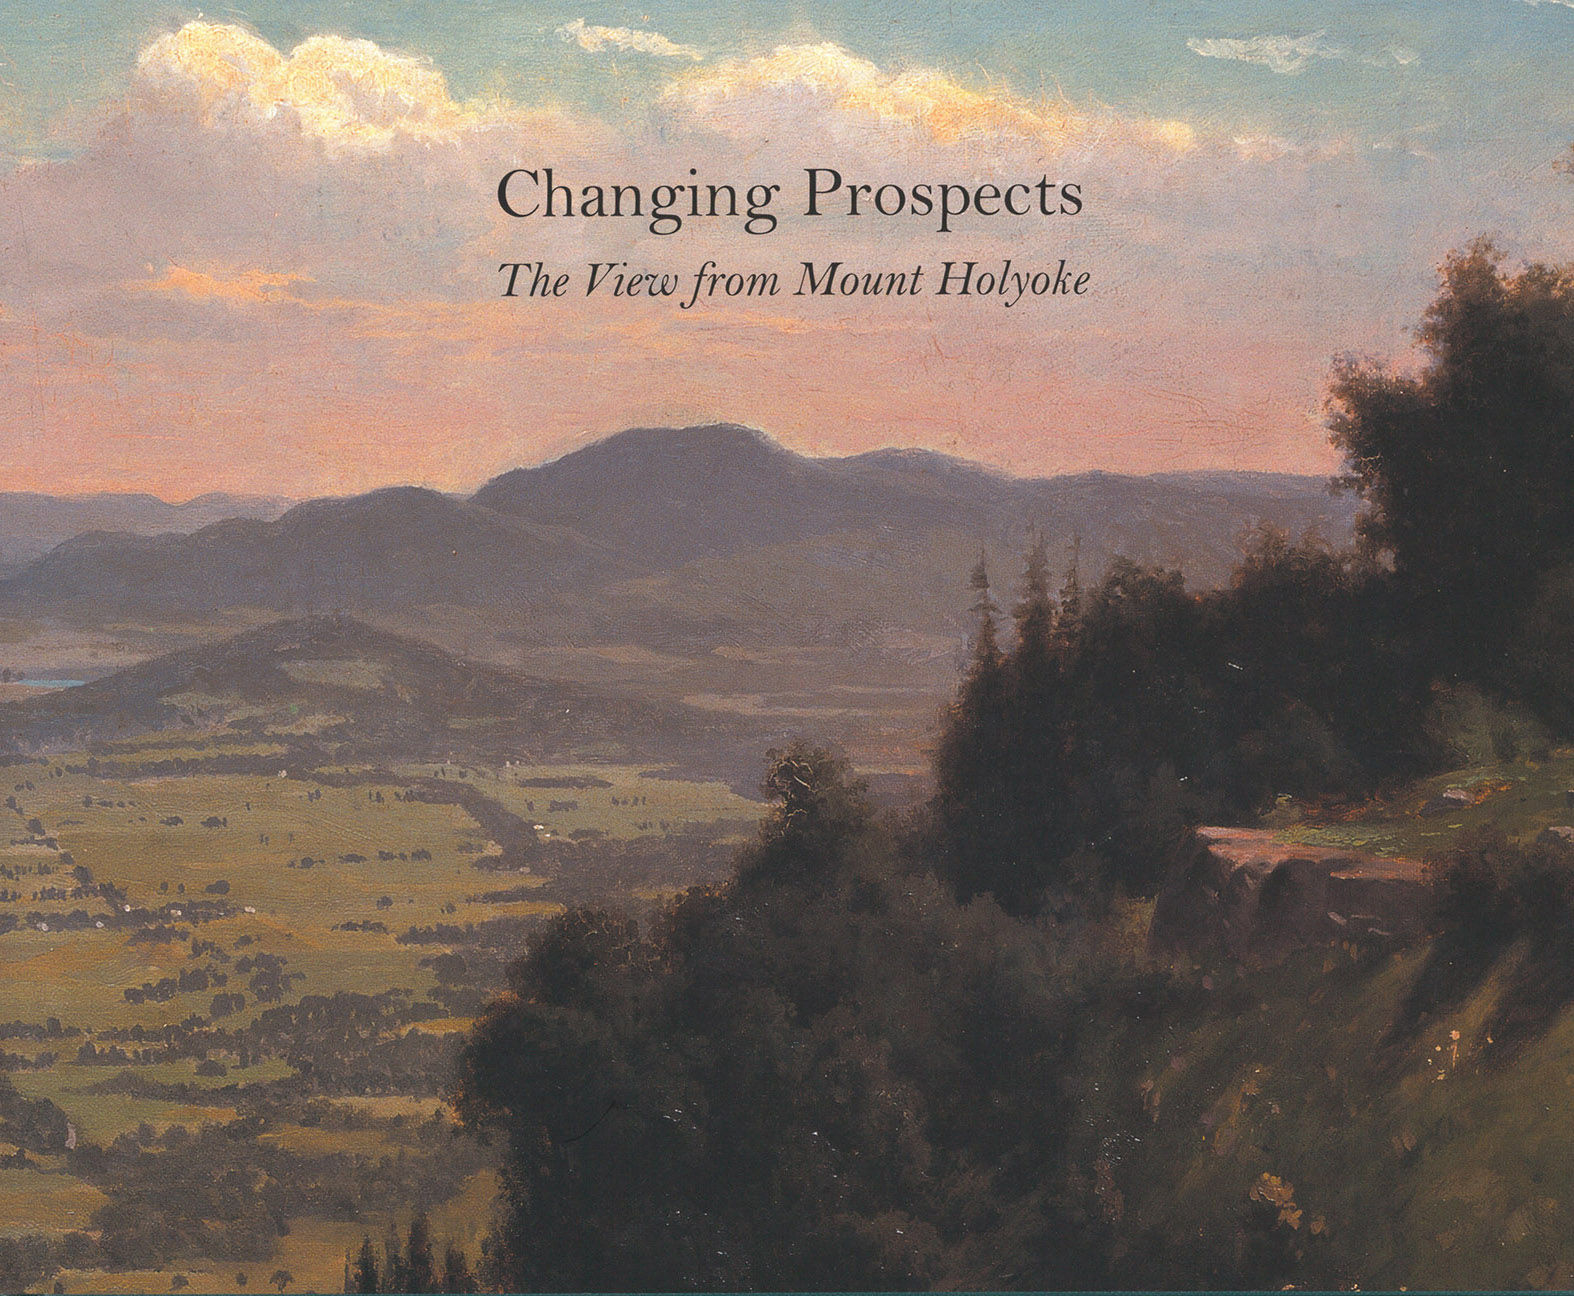 Changing Prospects